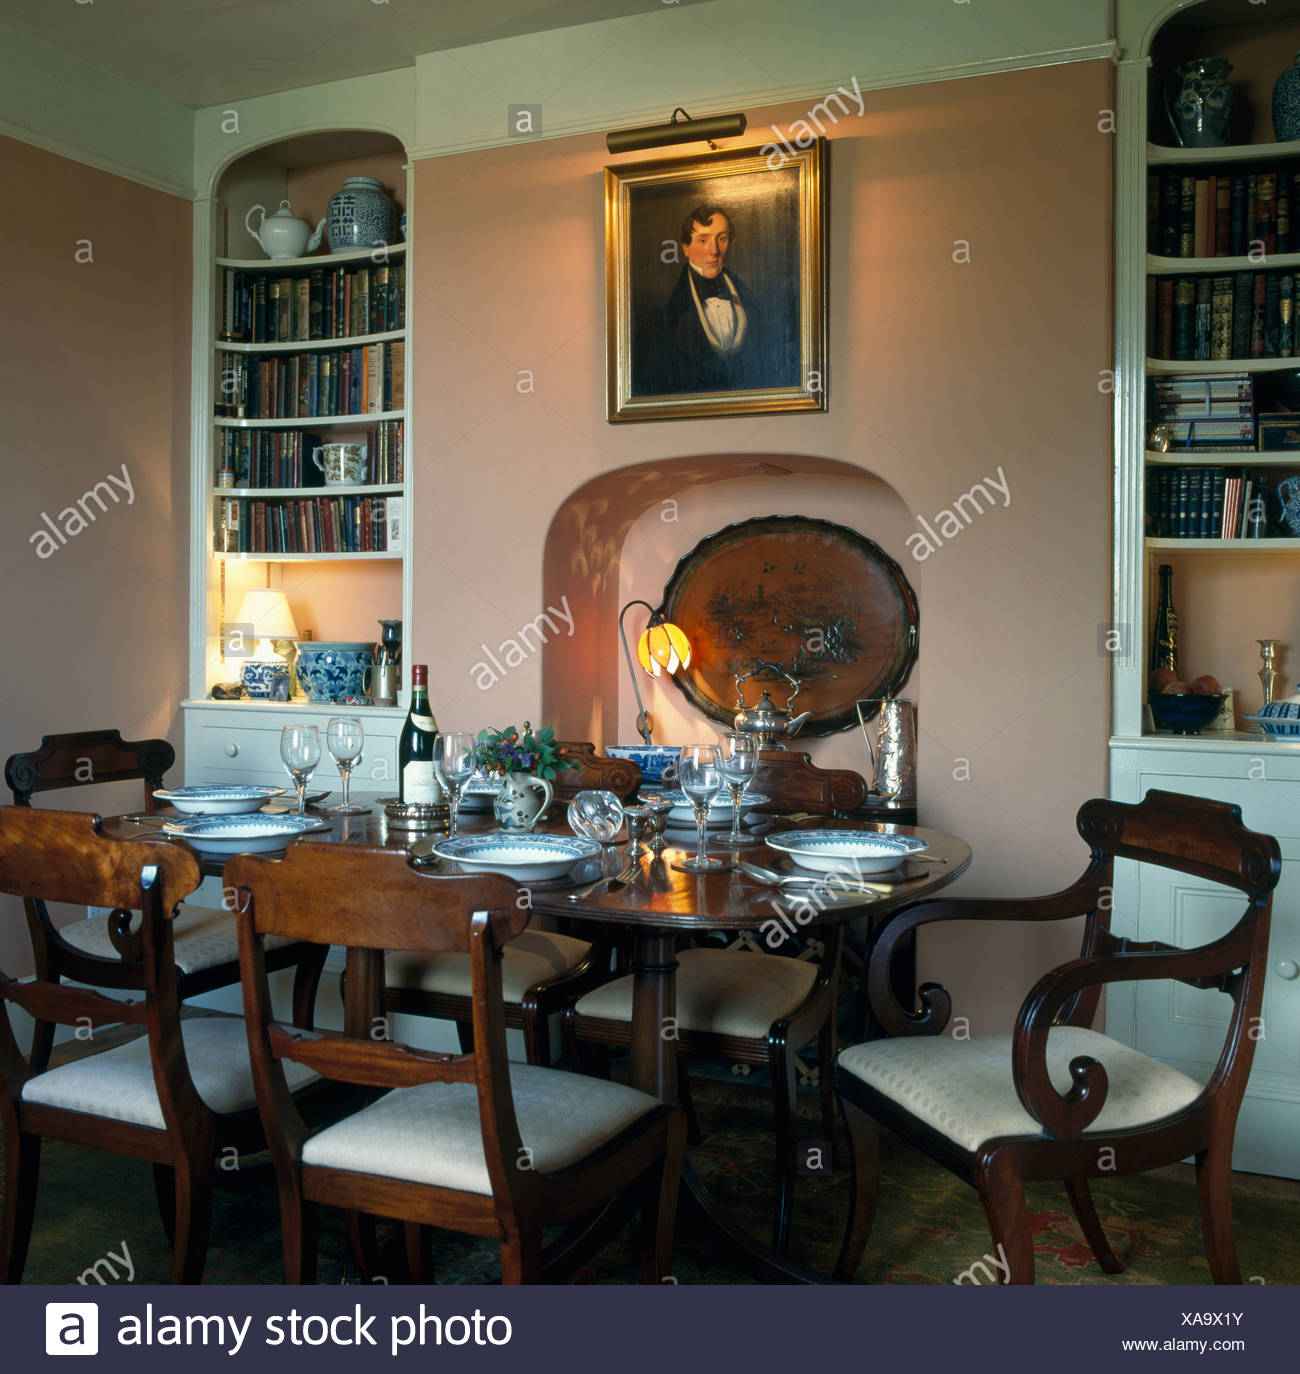 Alcove Bookshelves In Traditional Dining Room With Antique Furniture And  Picture Above Fireplace Alcove